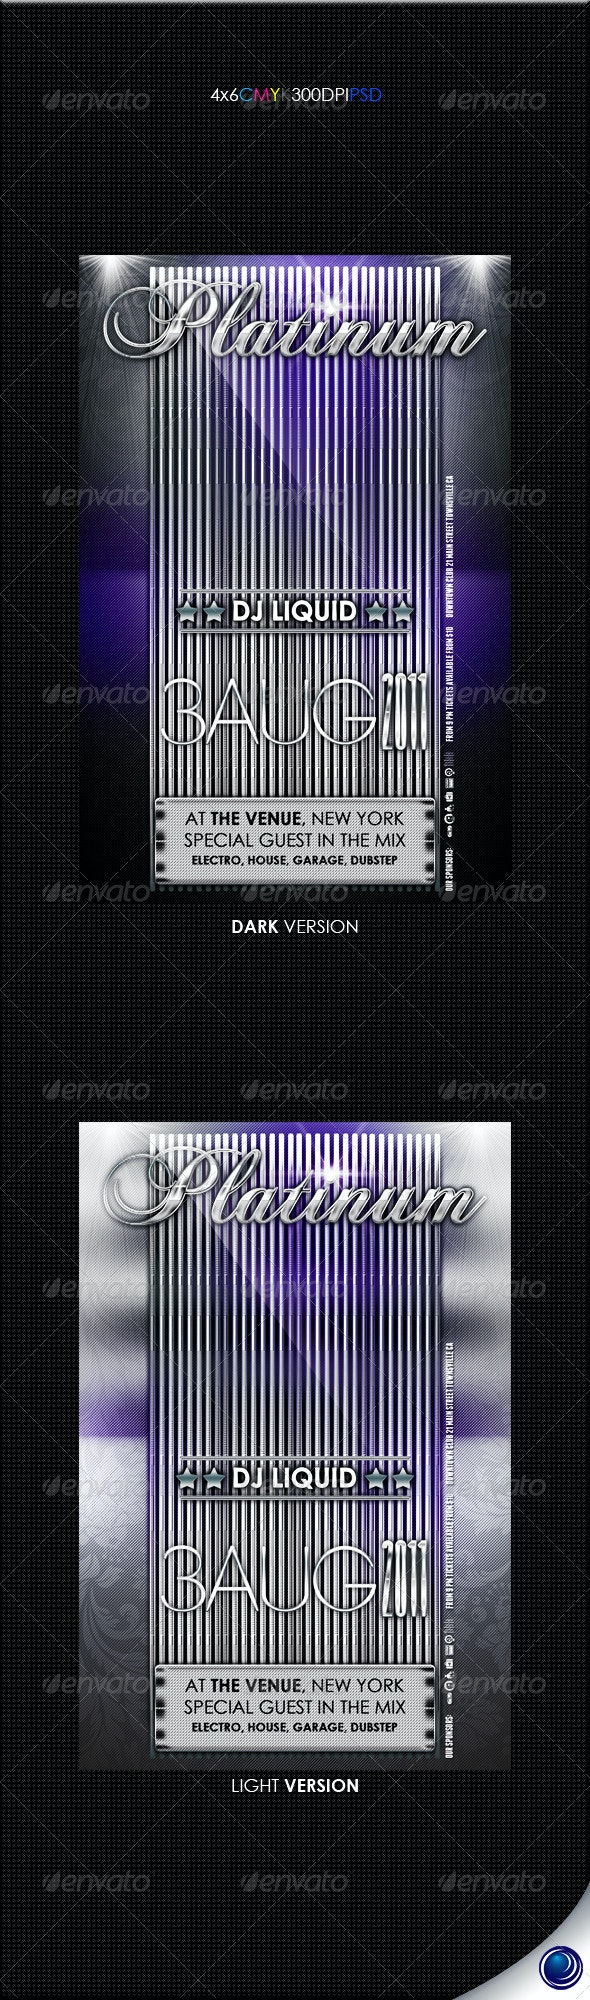 Elegant Metal Party Flyer Template - Clubs & Parties Events